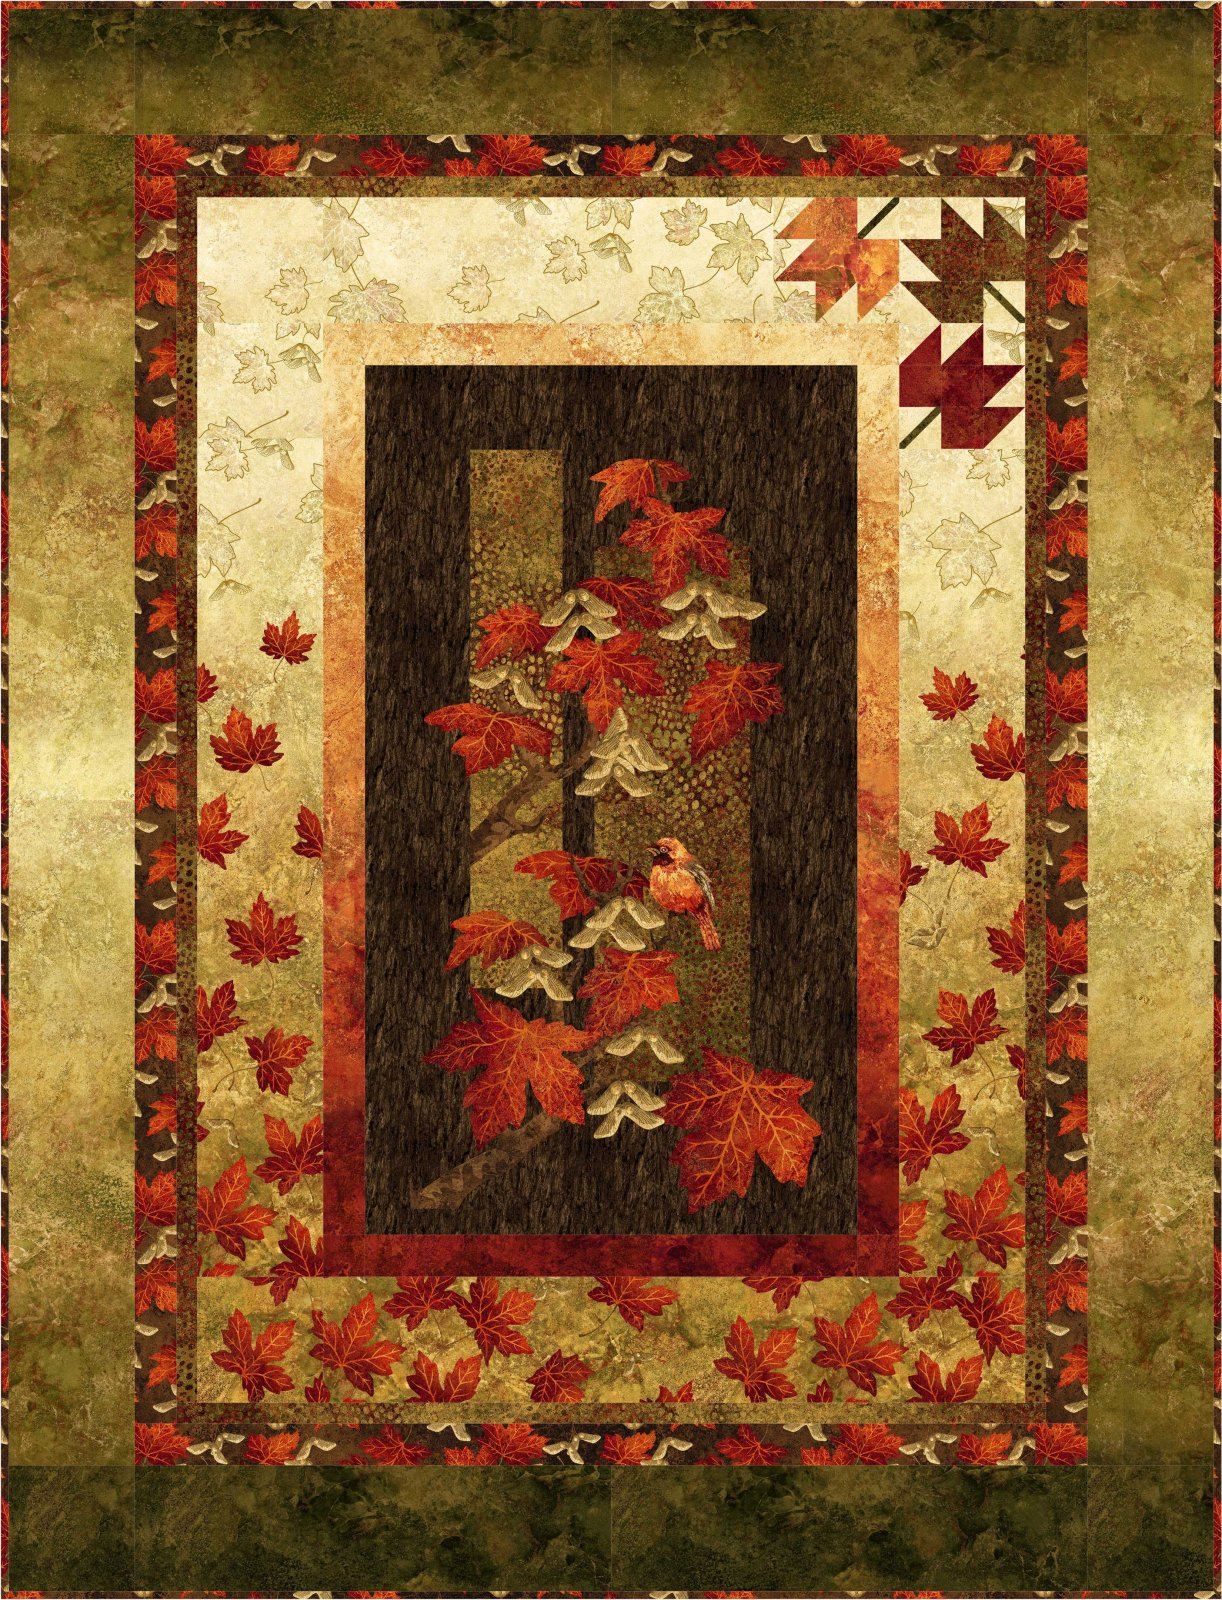 Autumn Splendor quilt pattern - downloadable